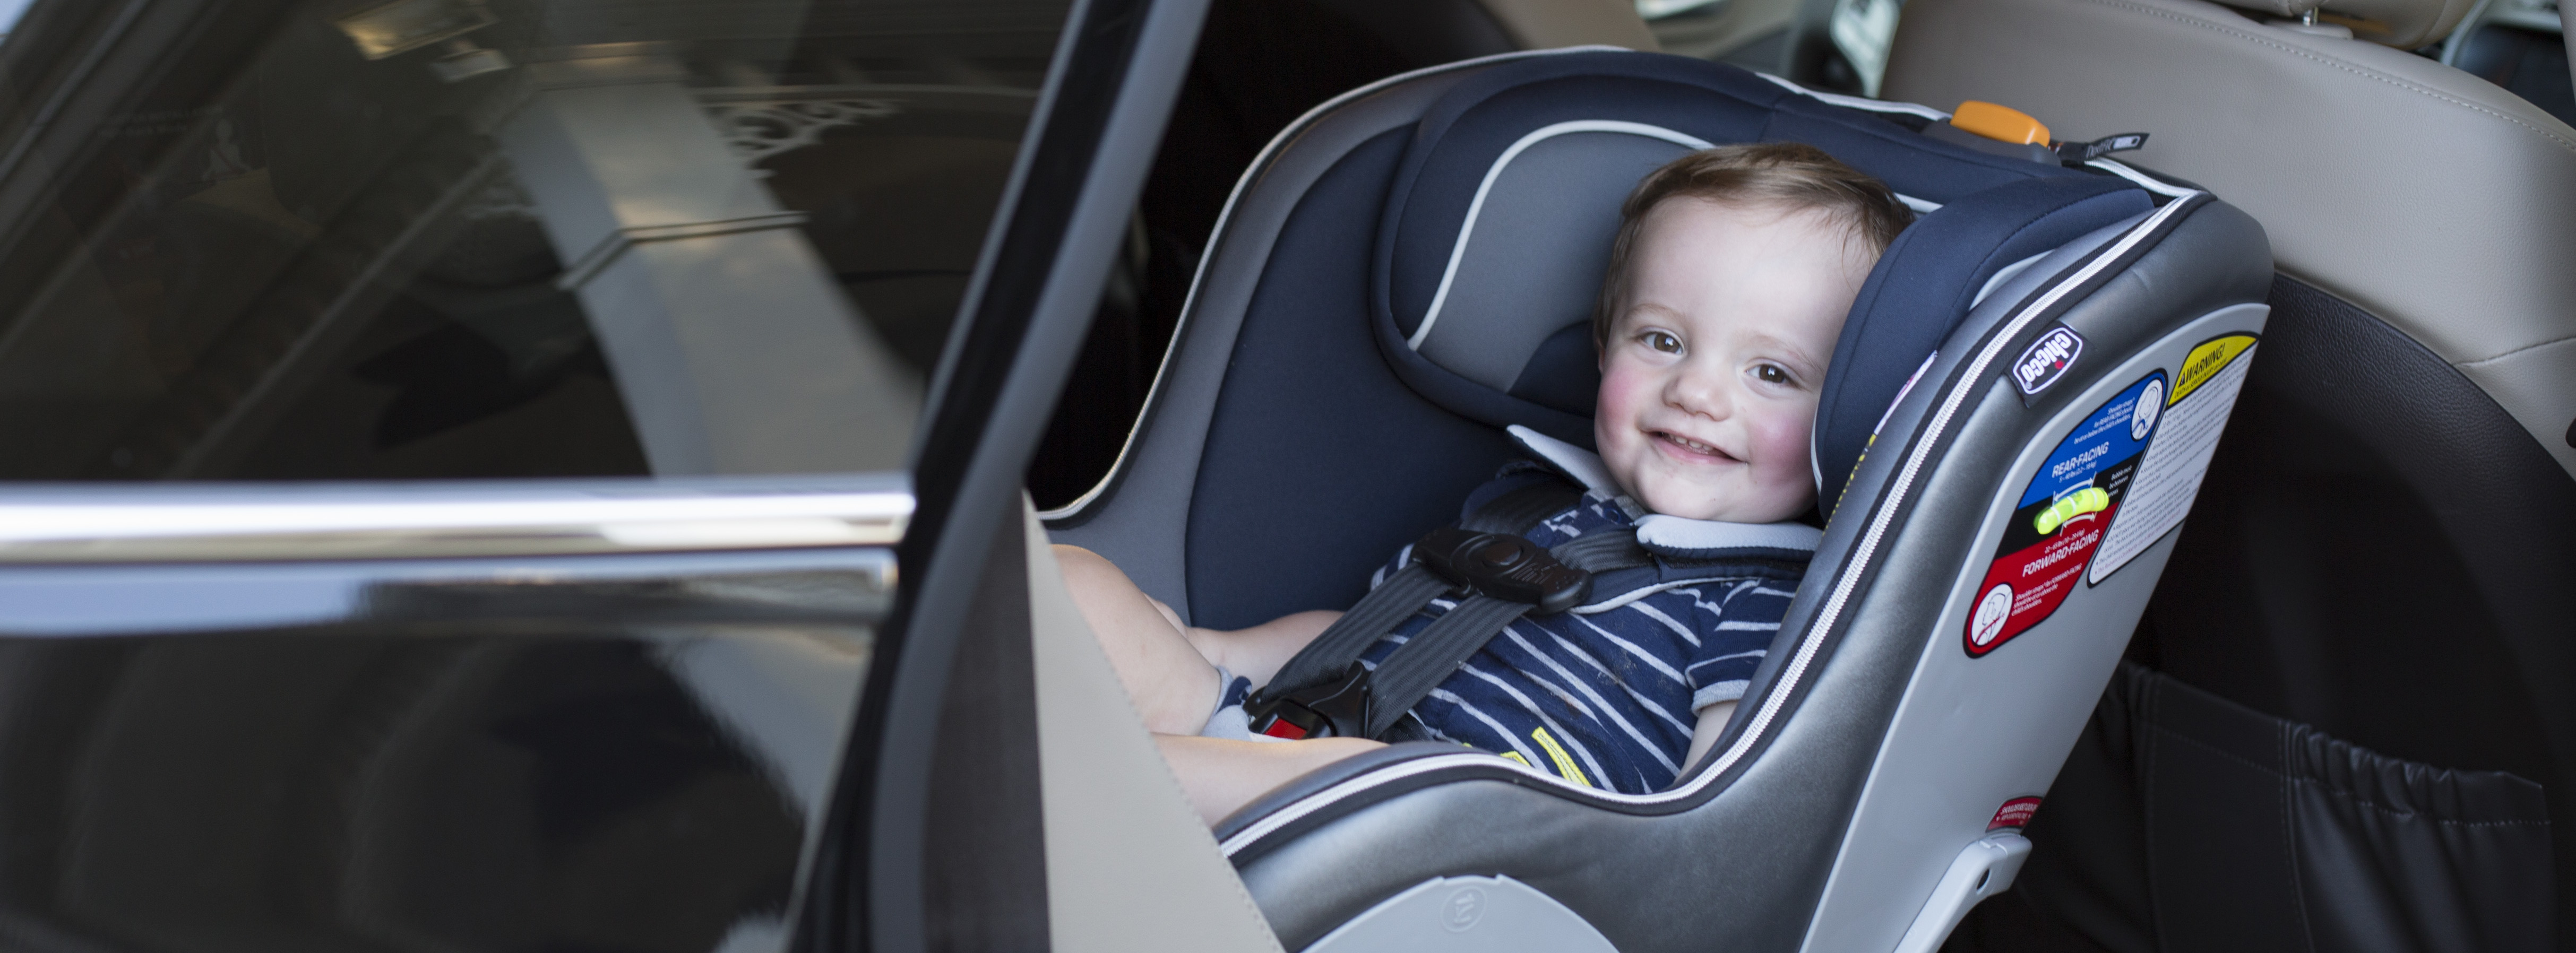 8 common carseat mistakes